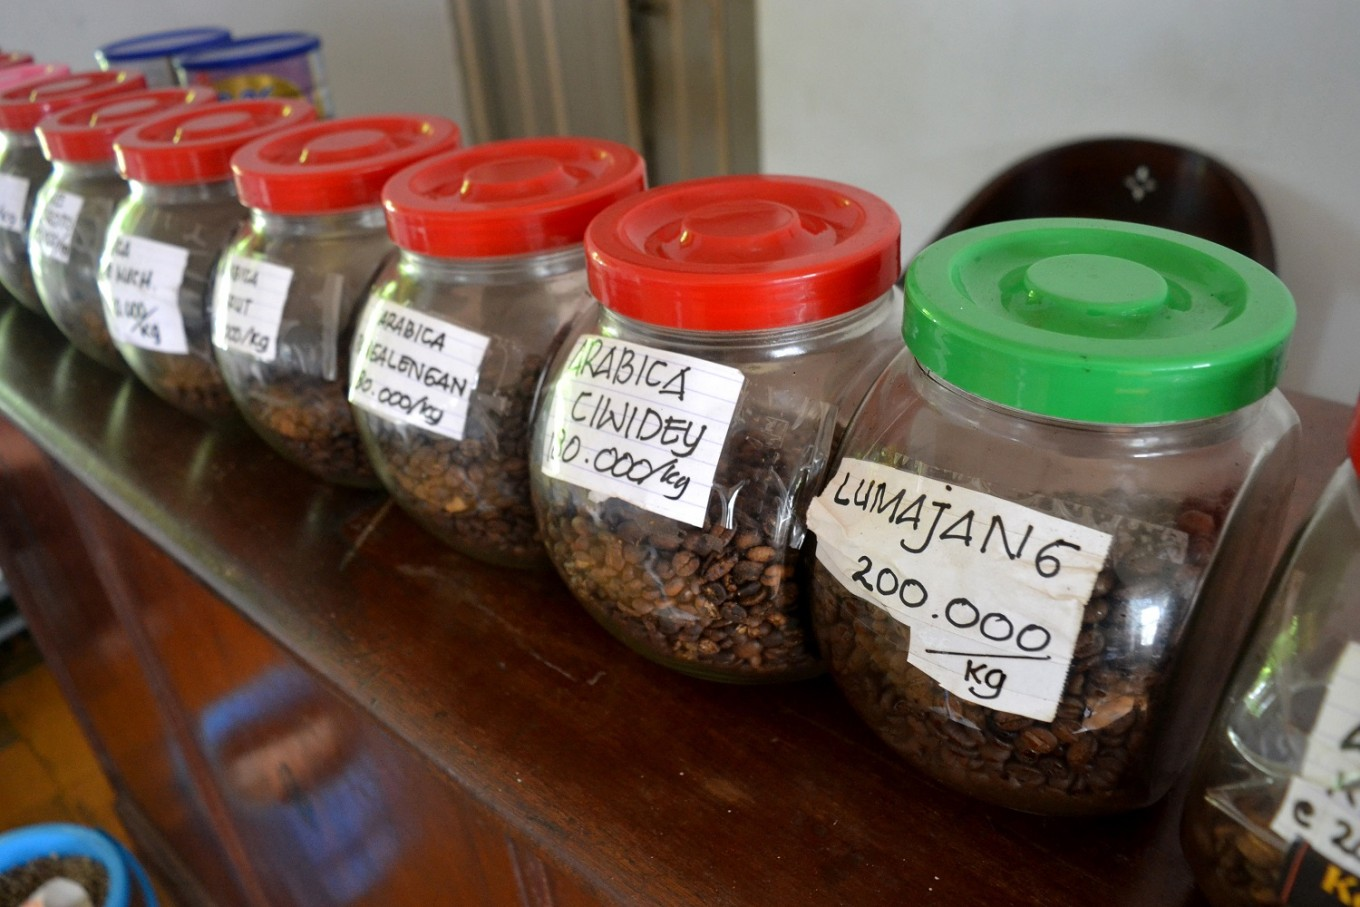 Under the watchful eye of Basuki, the shop is now selling roasted coffee beans from across Indonesia, such as Lintong, Gayo, Mandailing, Sumbawa and Ciwidey coffees.